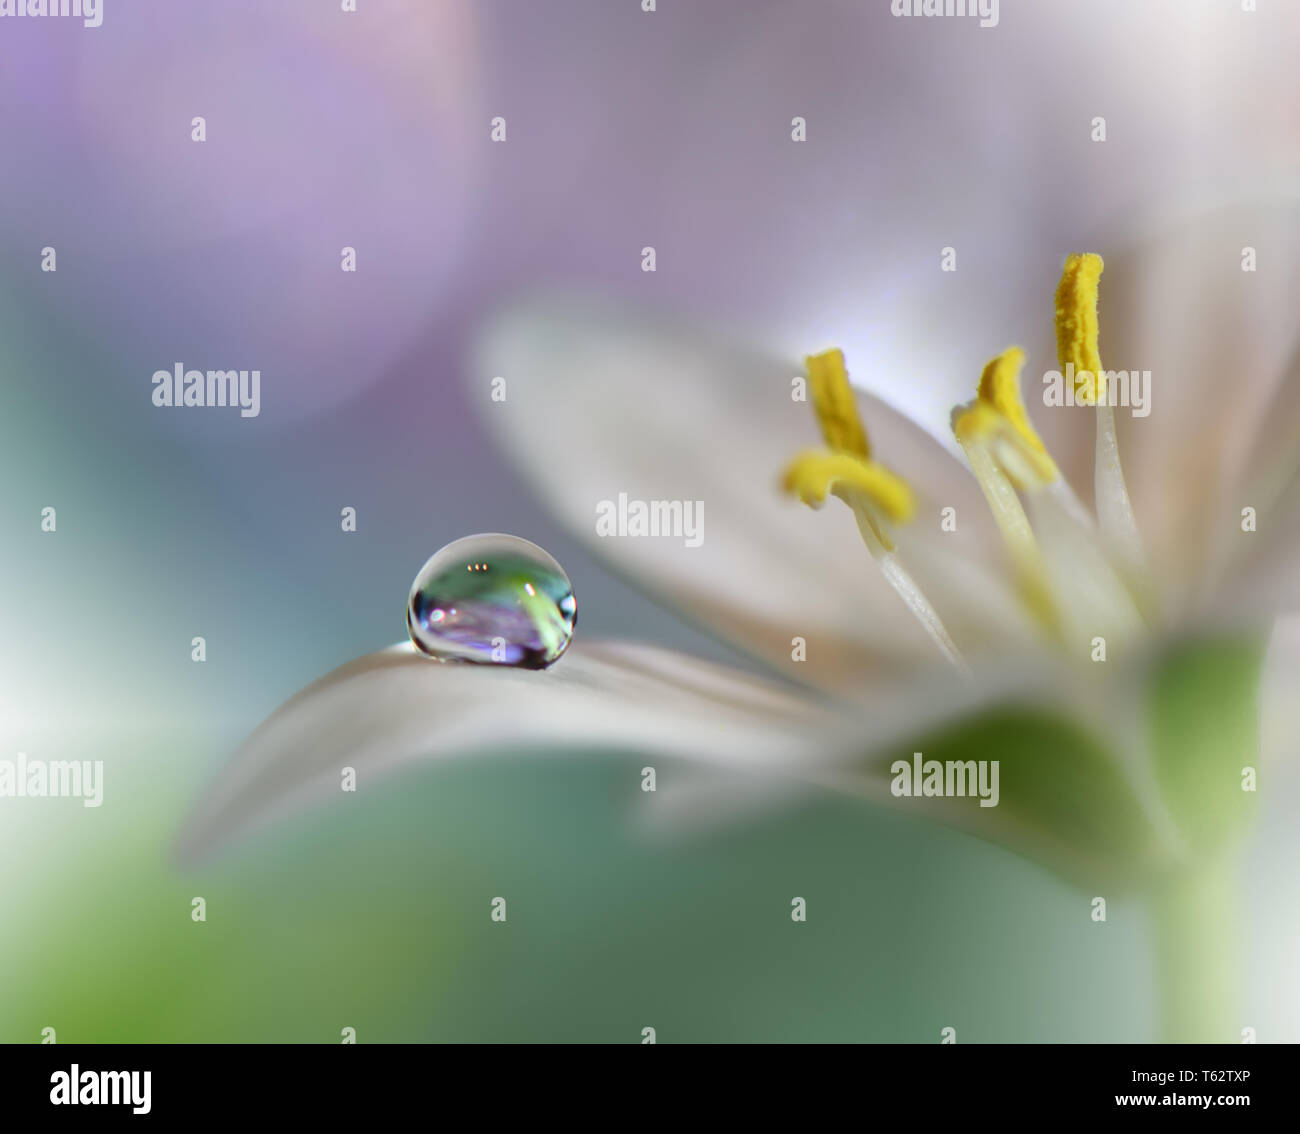 Beautiful Green Nature Background Colorful Artistic Wallpaper Natural Abstract Macro Photography Creative Floral Art Design Love Romance Romantic Pure Stock Photo Alamy